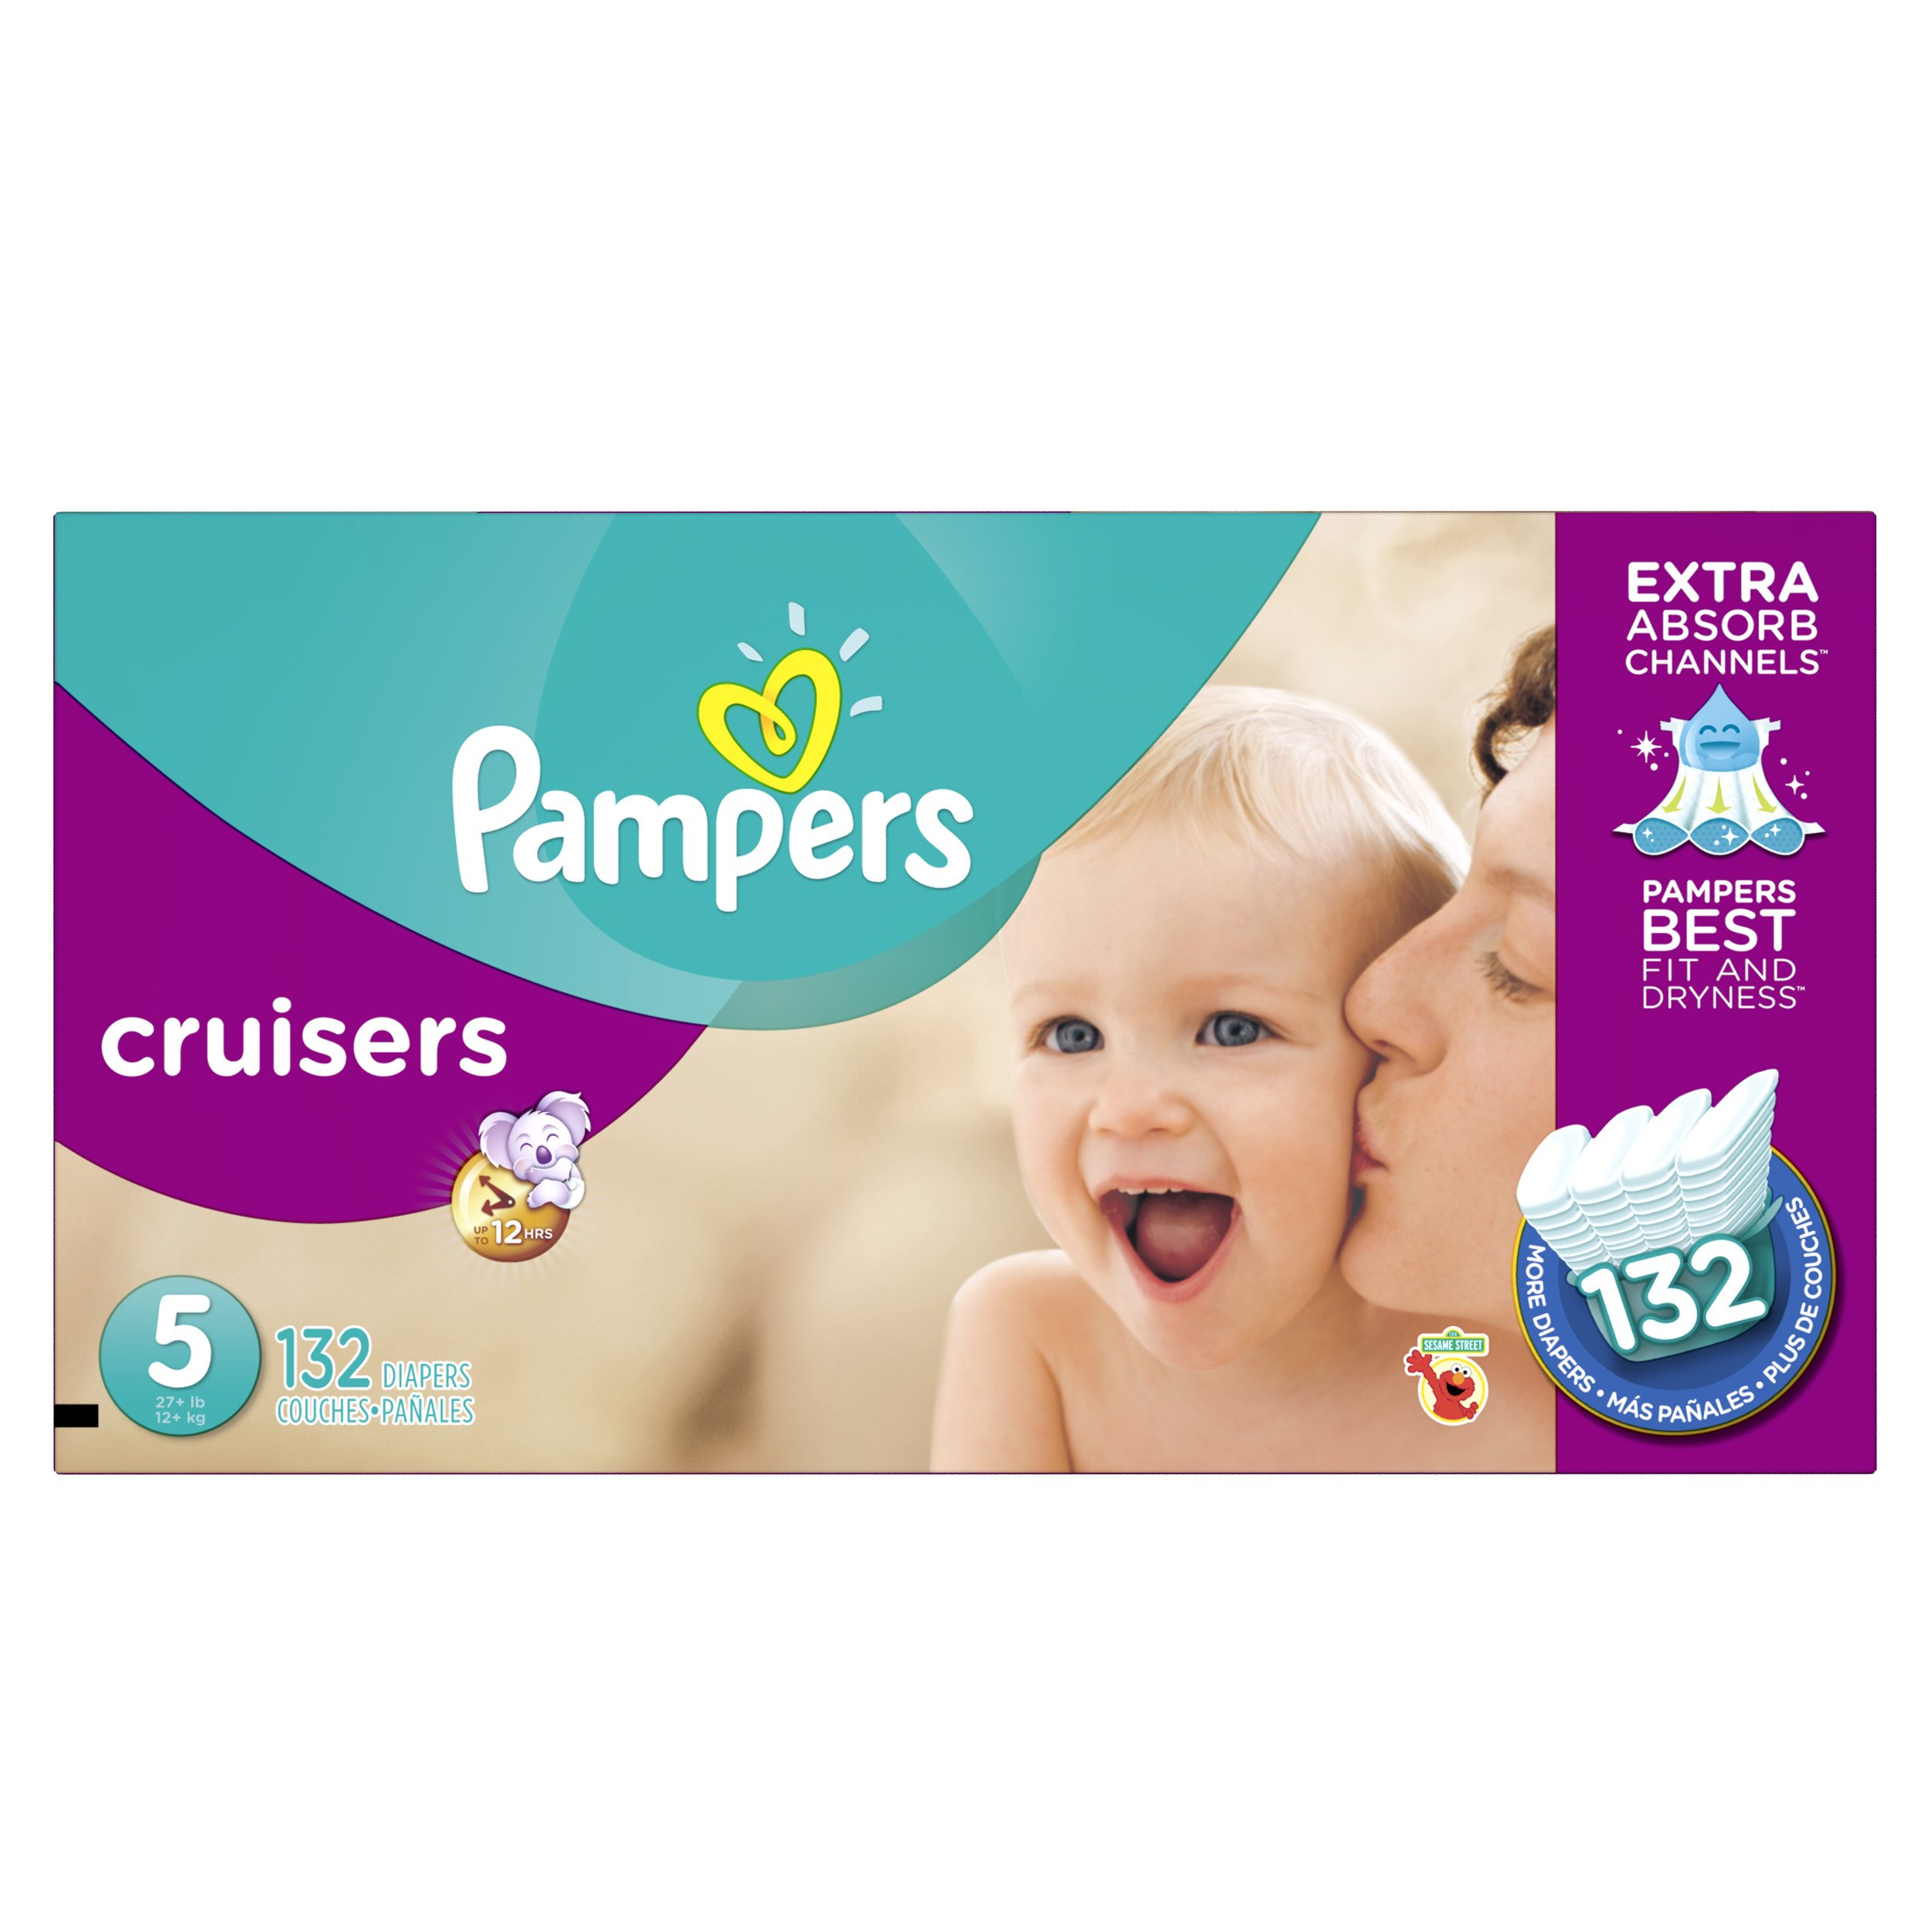 Pampers Cruisers Diapers Size 5 132 Count (old version) (Packaging May Vary)